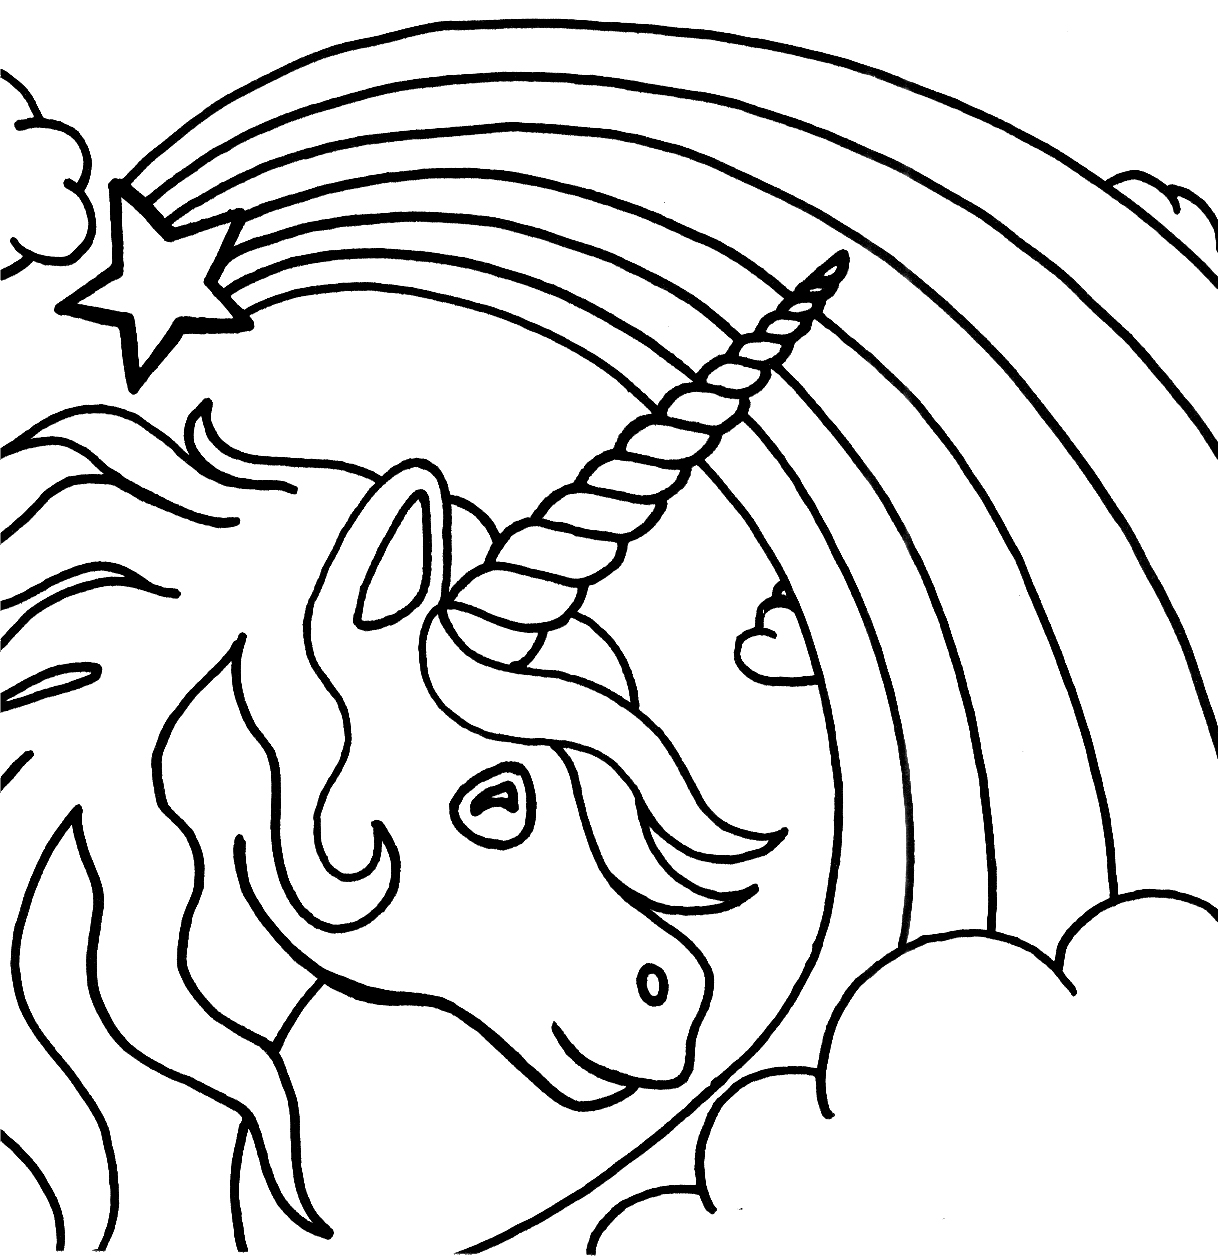 Luxury Realistic Winged Unicorn Coloring Pages With